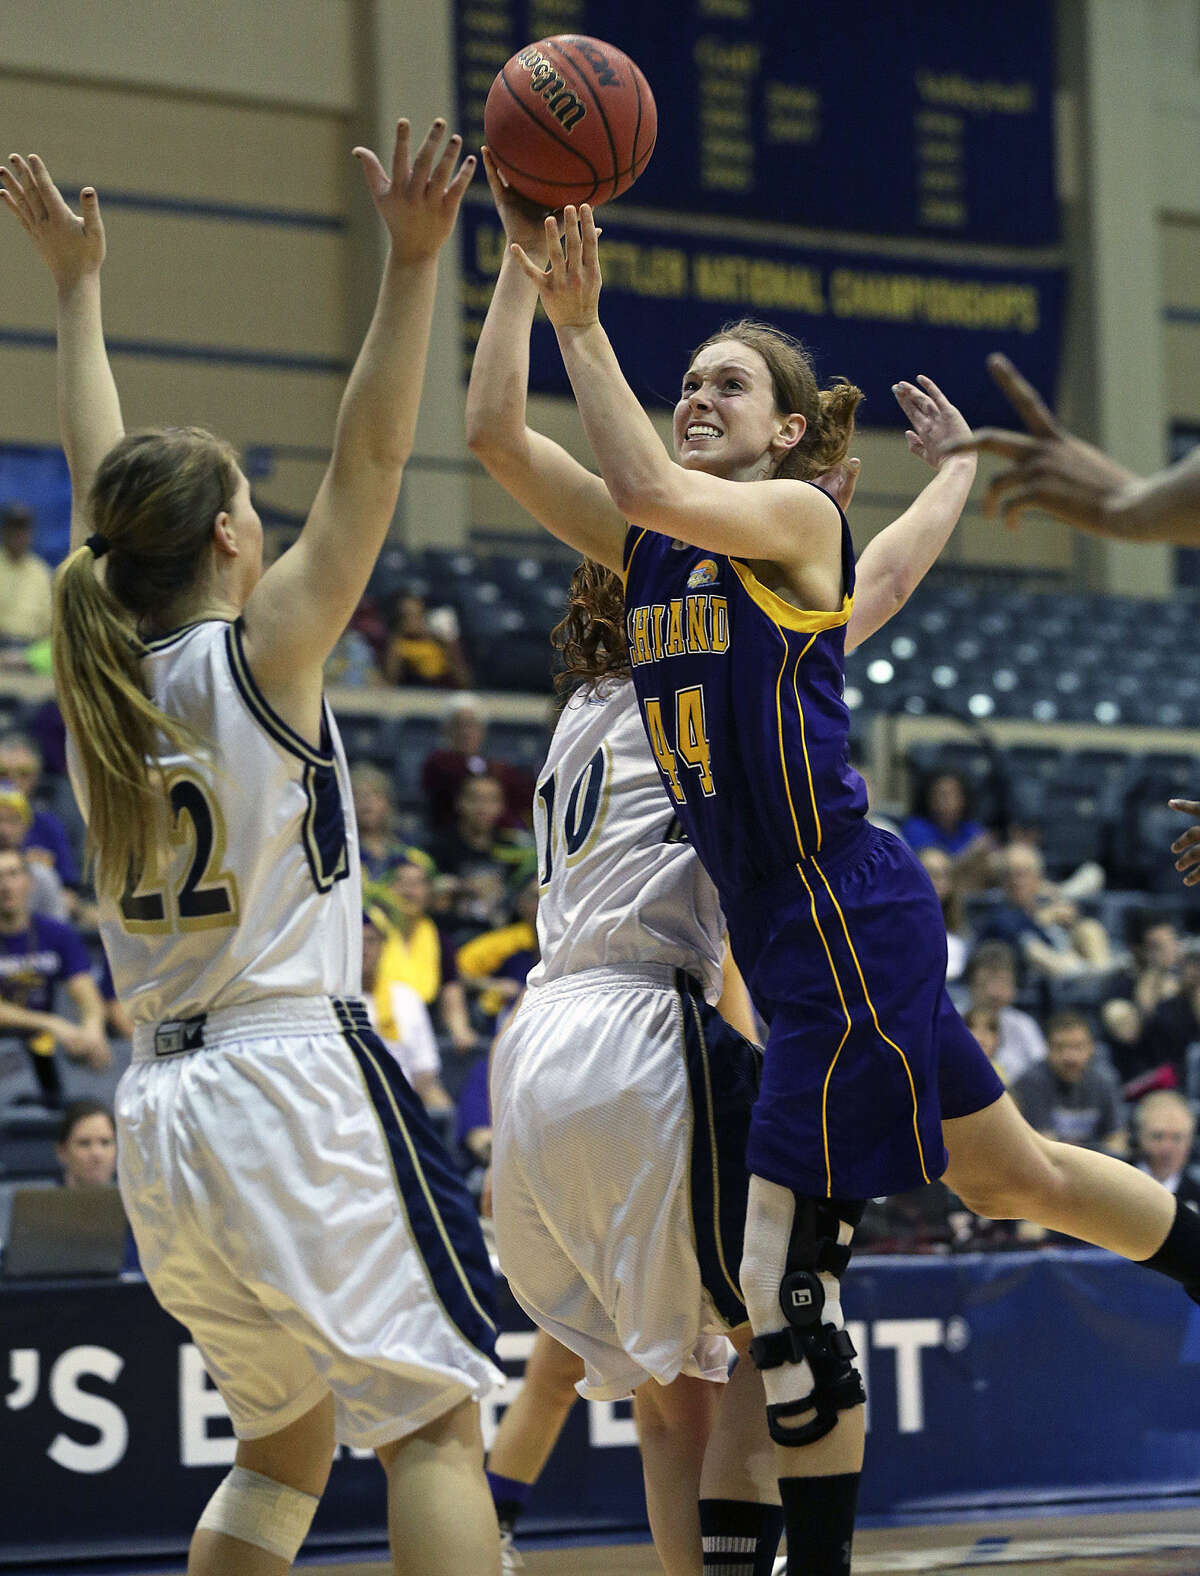 Kari Daugherty of Ashland tries to get off a shot in traffic Friday night at Greehey Arena. The Division II tournament MVP had 26 points and 12 boards in the victory.